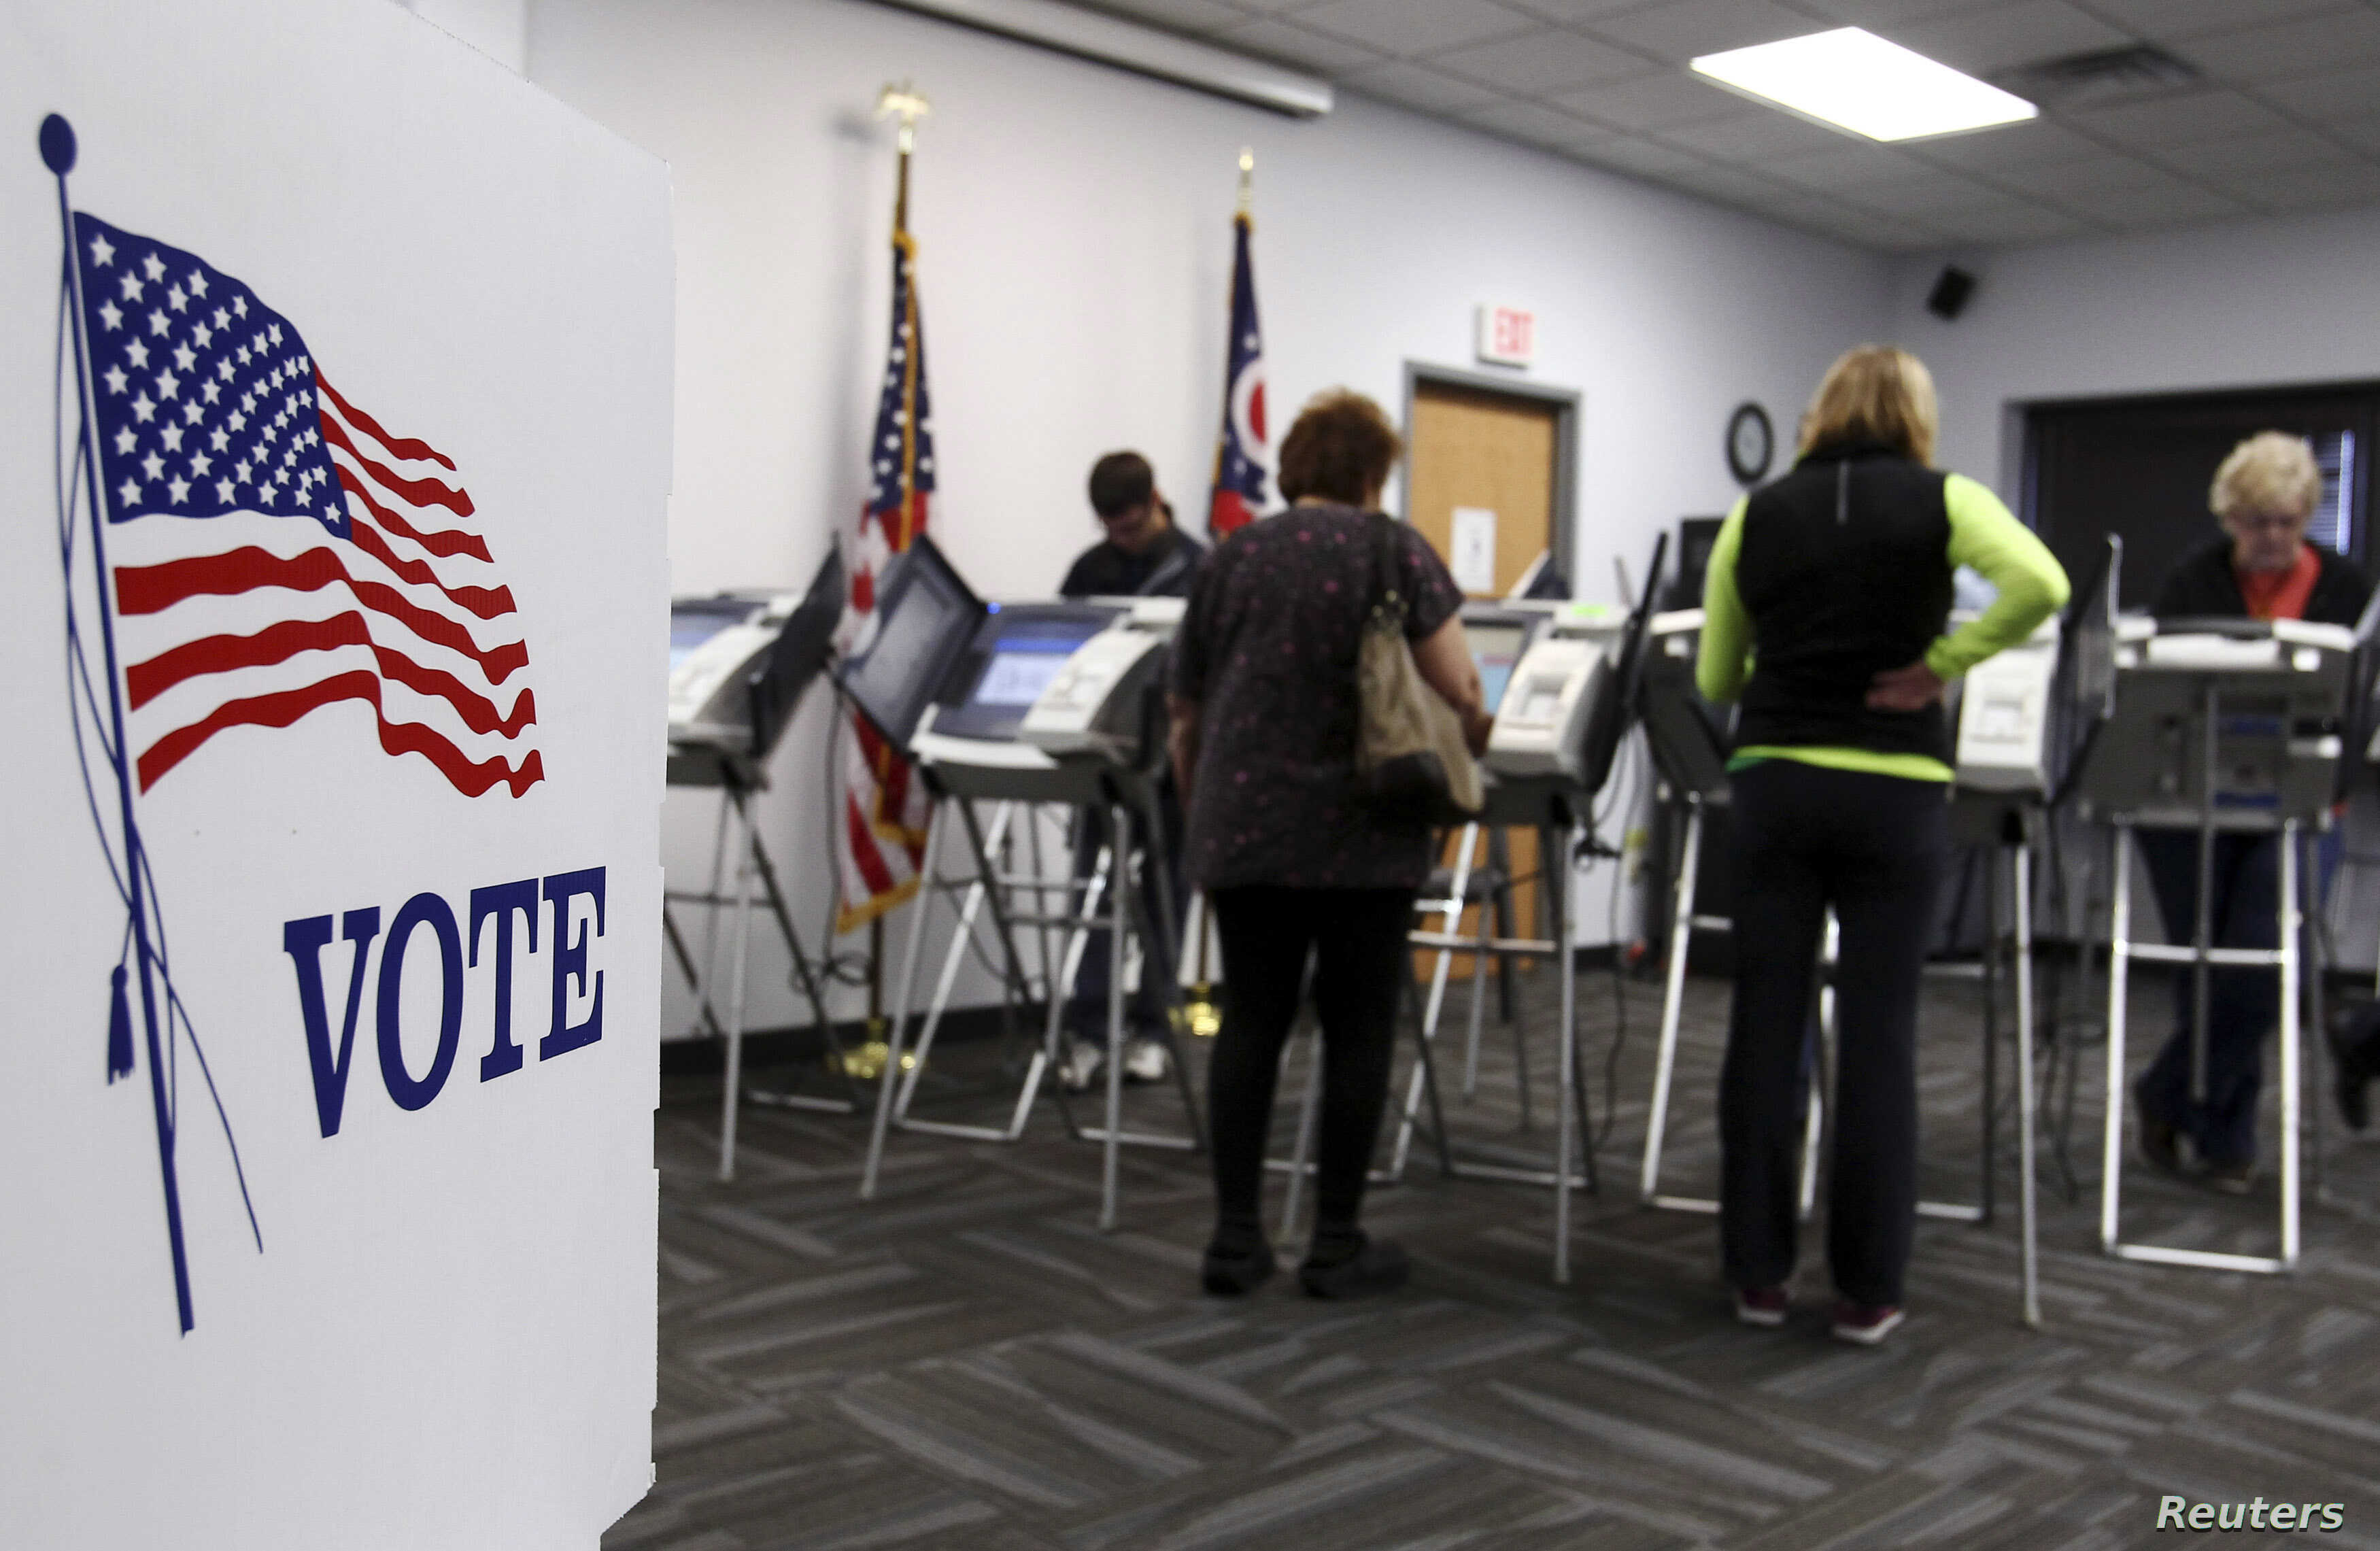 FILE - Ohio voters cast their votes at the polls for early voting in the 2012 U.S. presidential election in Medina, Ohio.